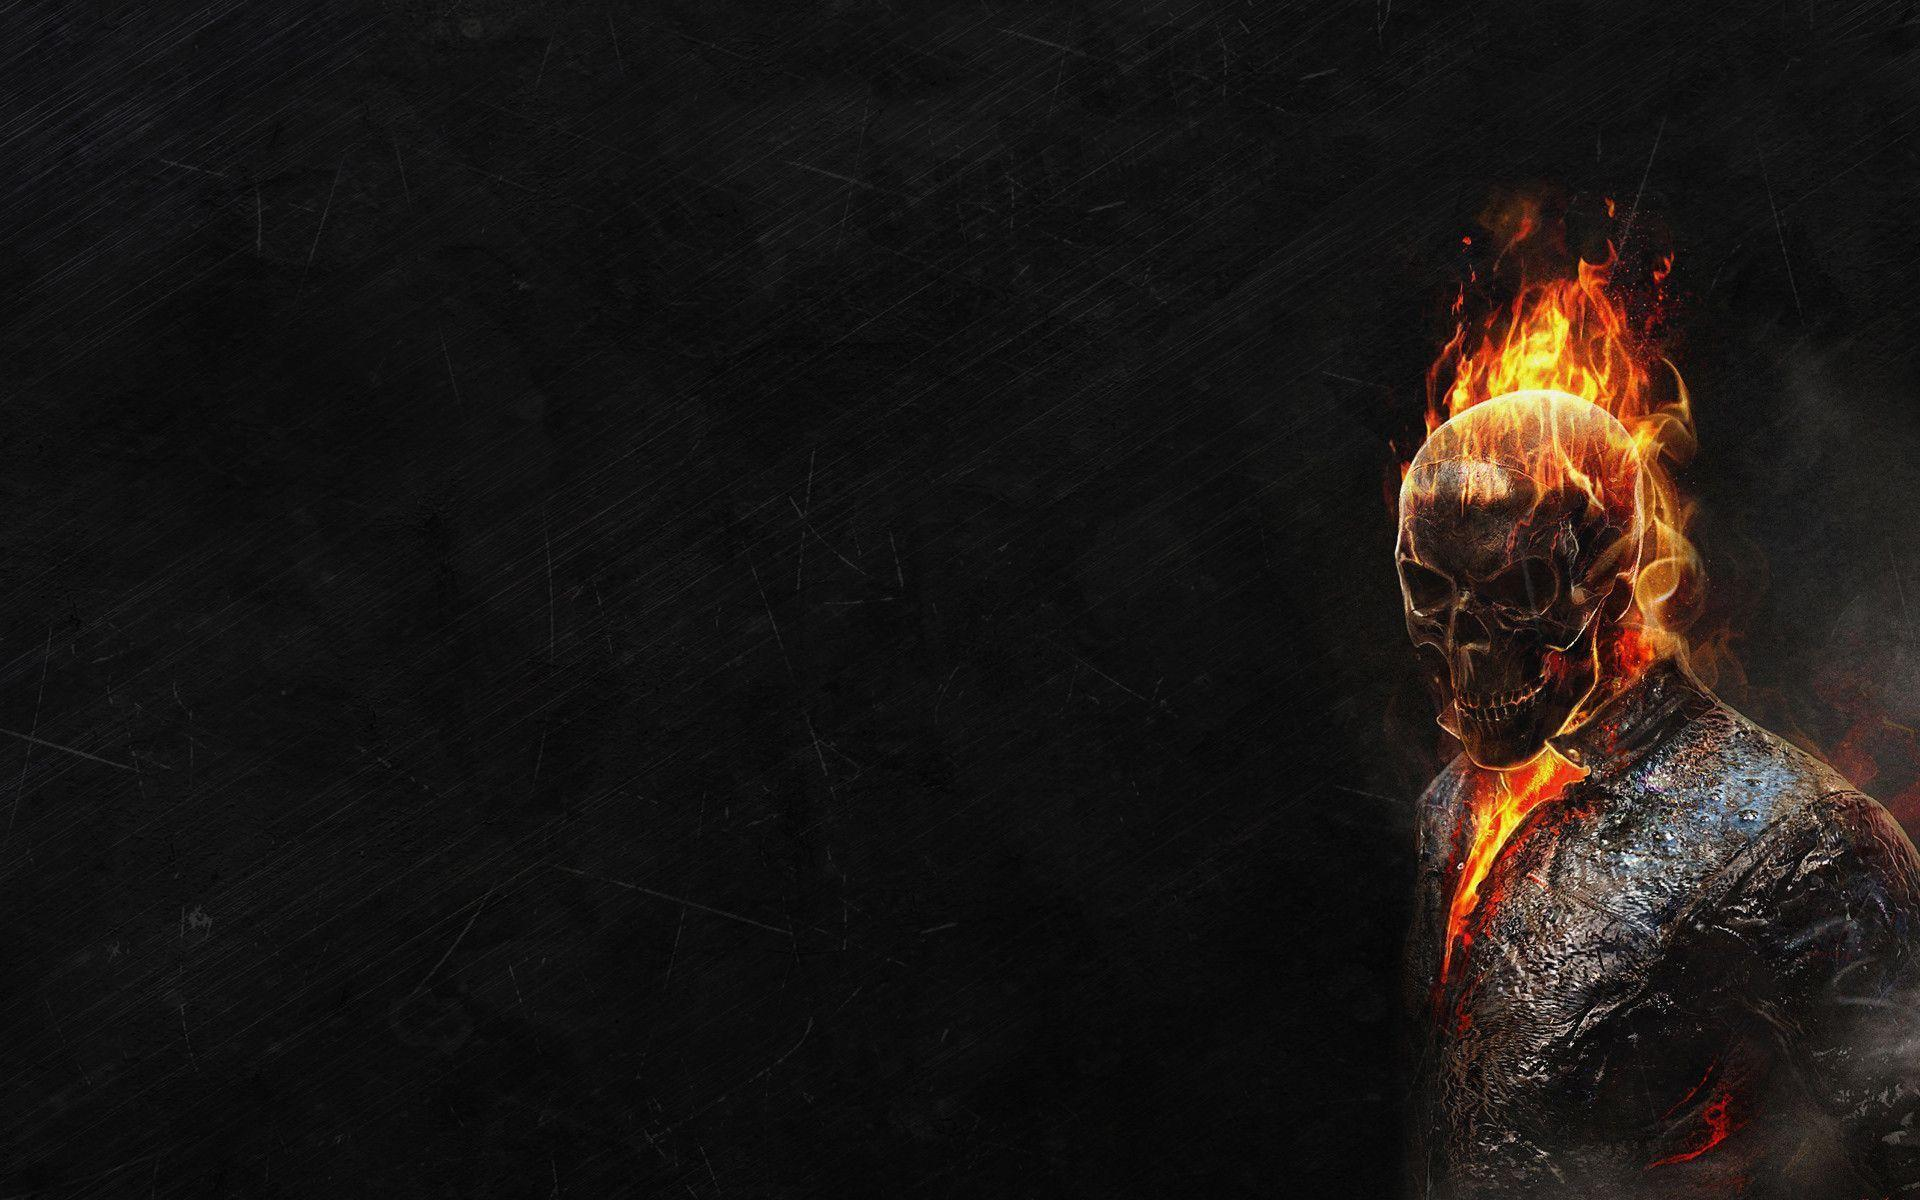 Ghost Rider Computer Wallpapers, Desktop Backgrounds 1920x1200 Id